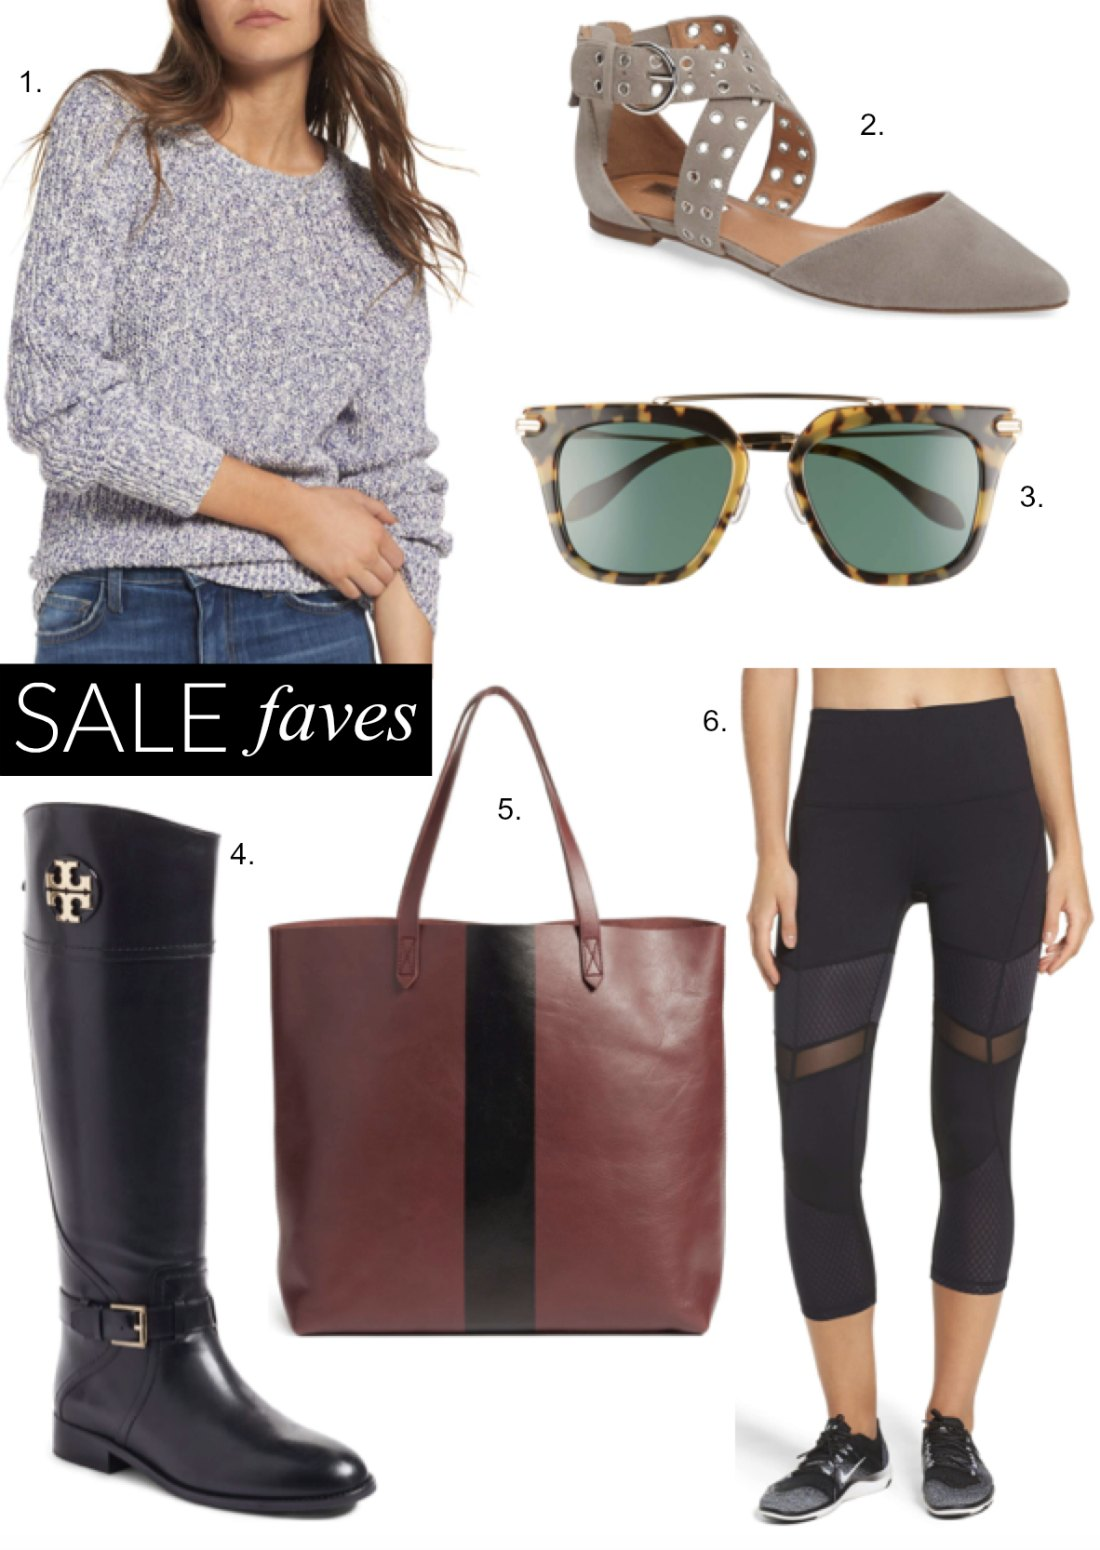 Best Labor Day Sale Finds tory burch adeline boots sale madewell bag